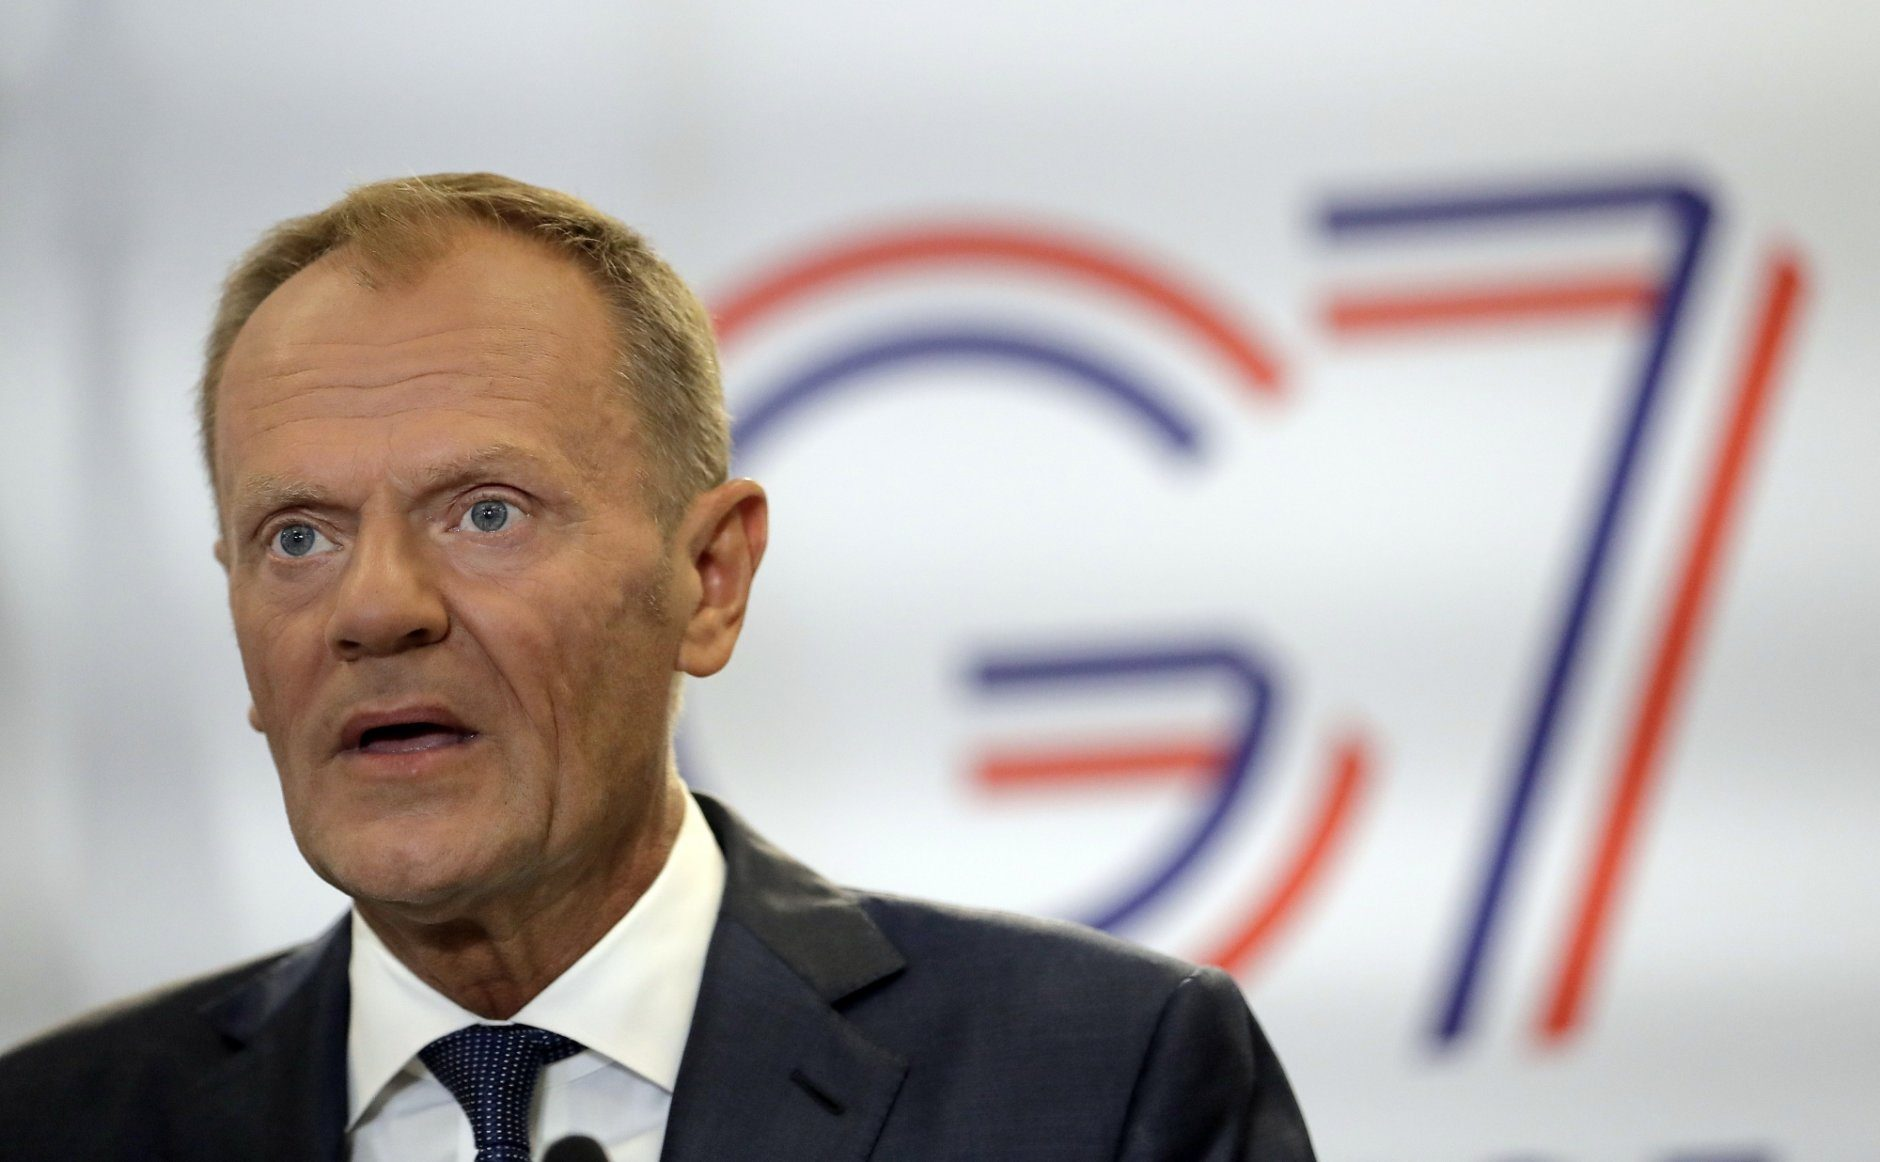 President of the European Council Donald Tusk speaks during a press conference on the first day of the G-7 summit in Biarritz, France Saturday, Aug. 24, 2019. U.S. President Donald Trump and the six other leaders of the Group of Seven nations will begin meeting Saturday for three days in the southwestern French resort town of Biarritz. France holds the 2019 presidency of the G-7, which also includes Britain, Canada, Germany, Italy and Japan. (AP Photo/Markus Schreiber)